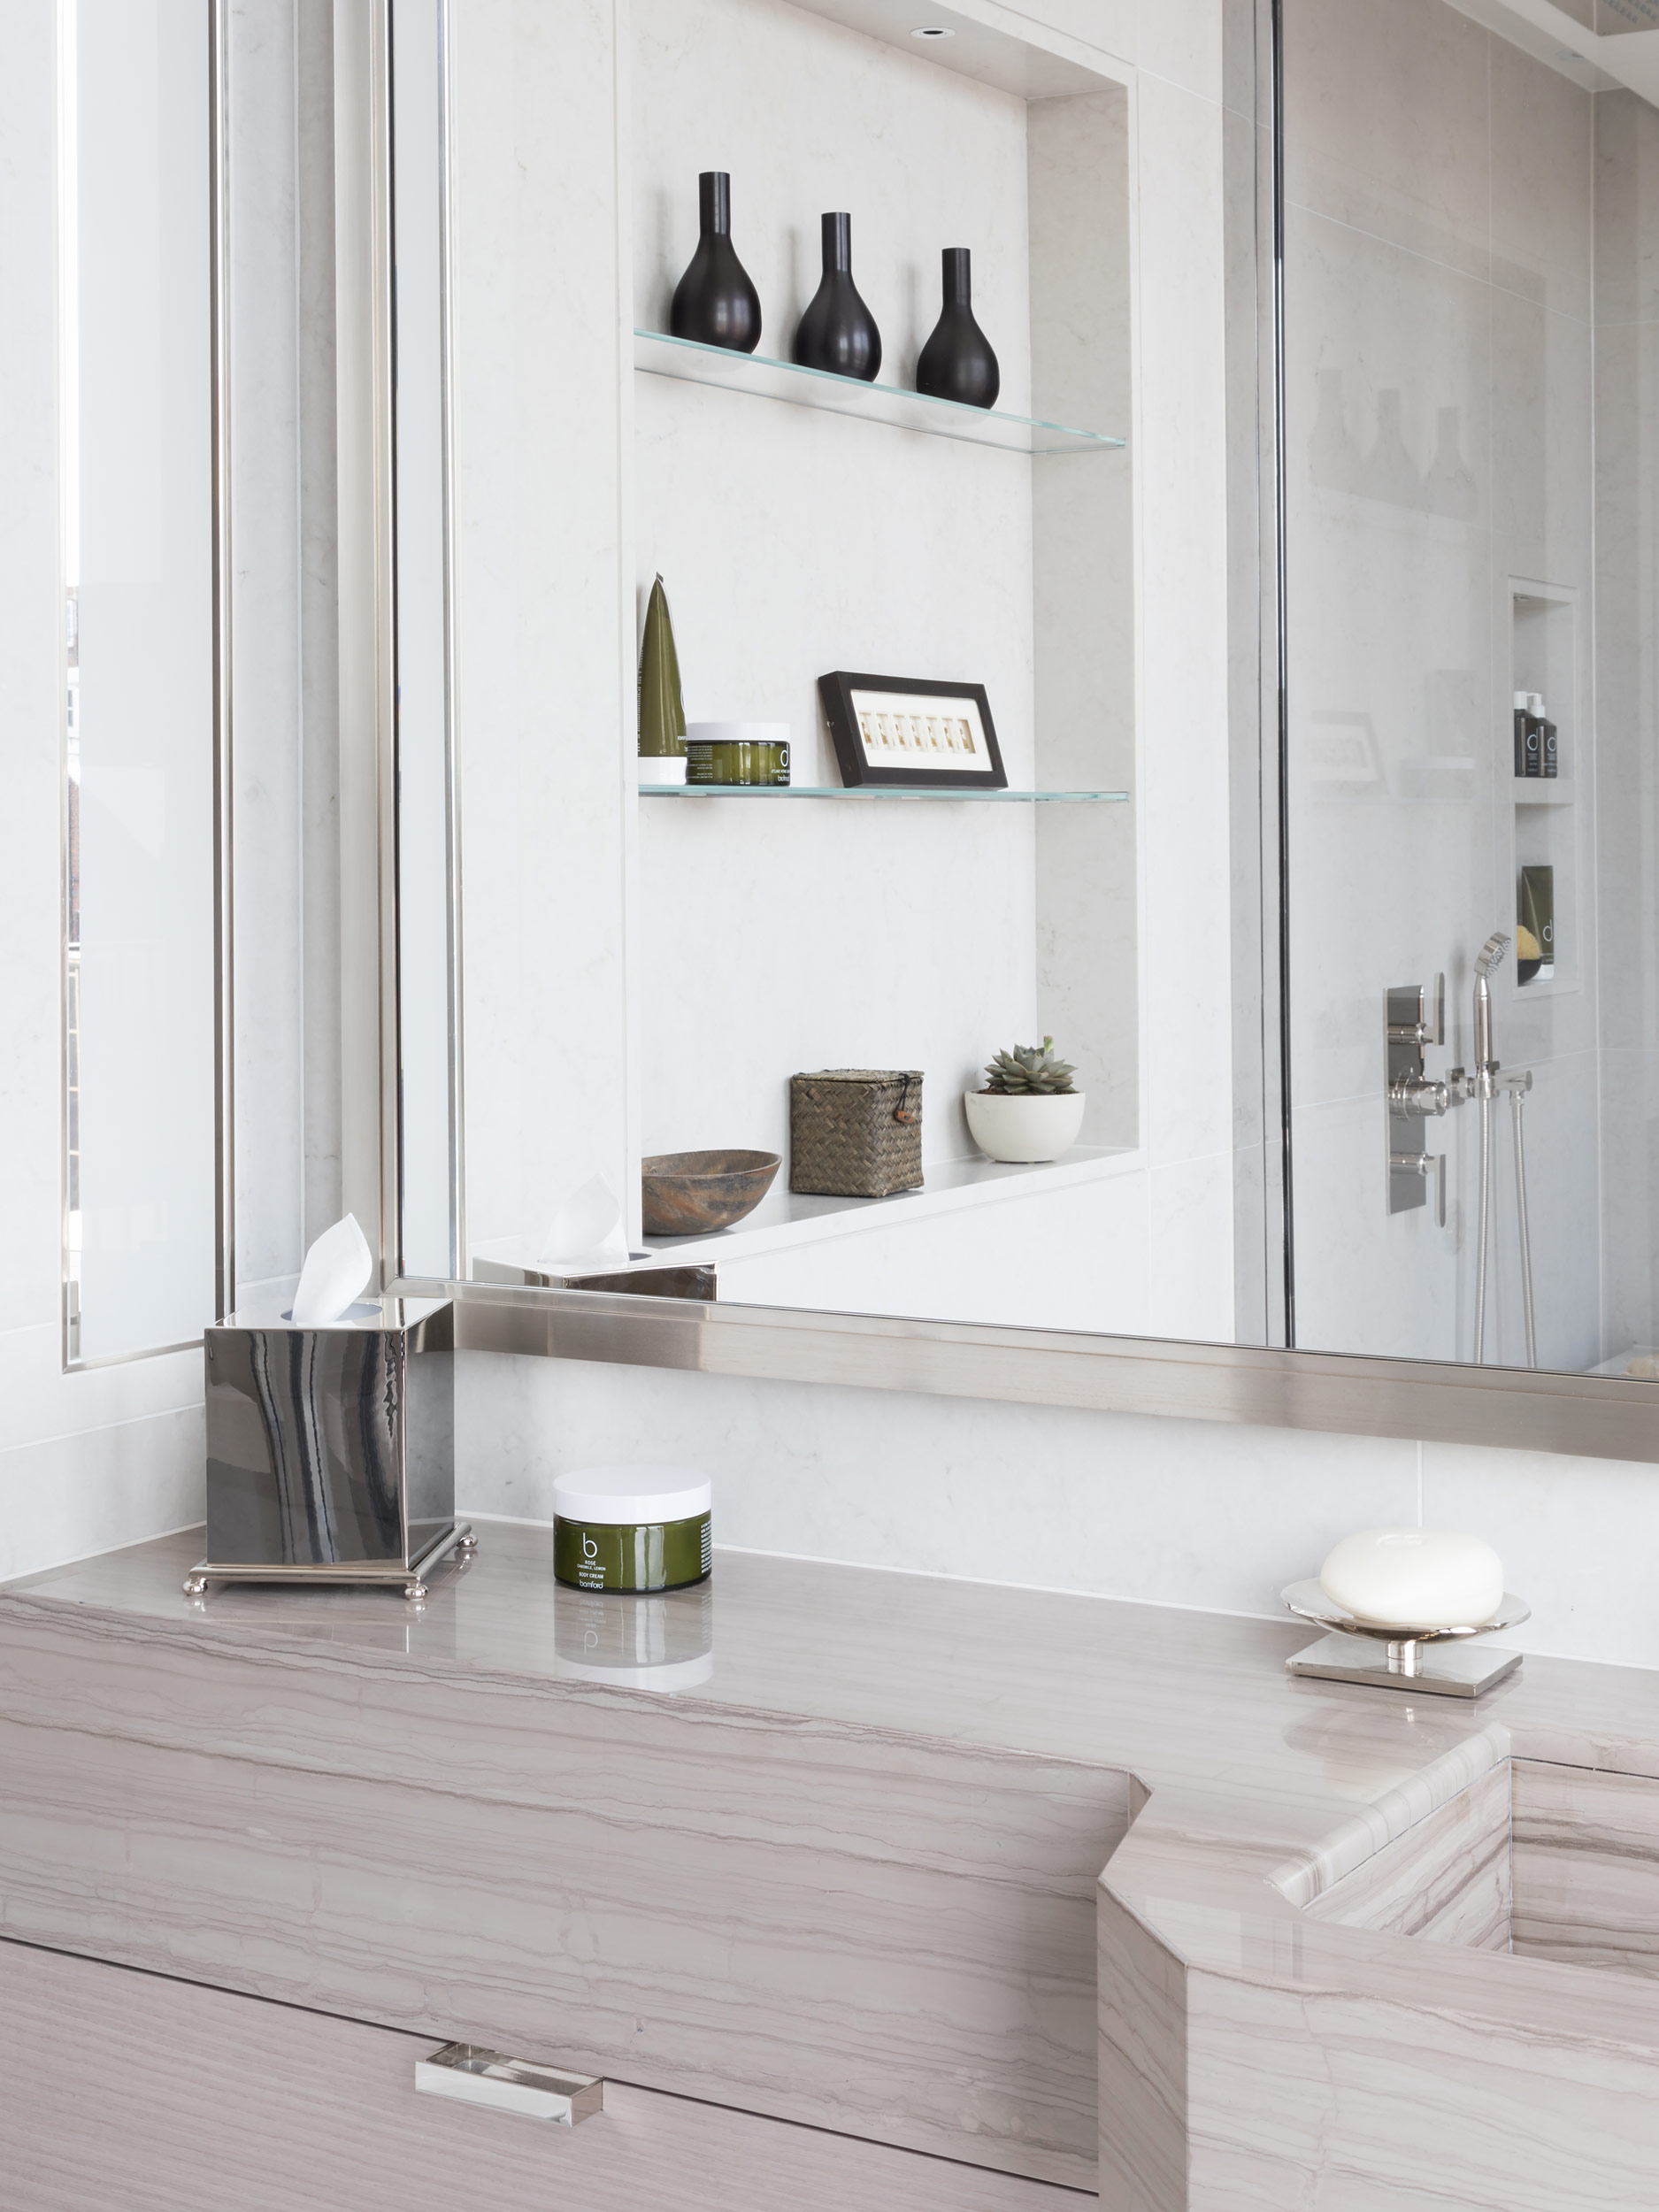 West One Bathrooms Case Studies Luxlo Penthouse Guest Bath 4a